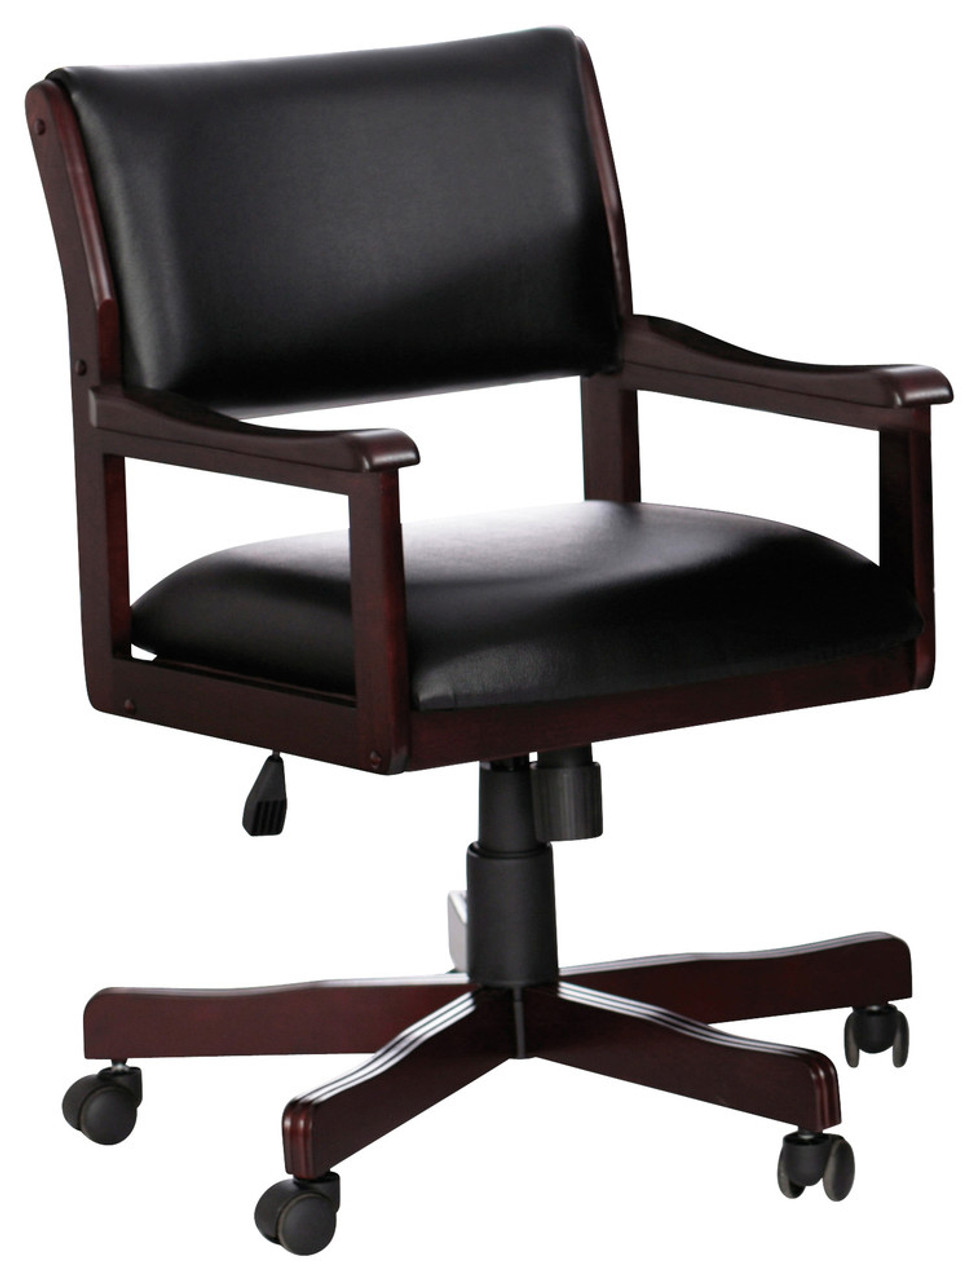 Admirable Cl Bailey Level Best Rocker Swivel Chair Ocoug Best Dining Table And Chair Ideas Images Ocougorg